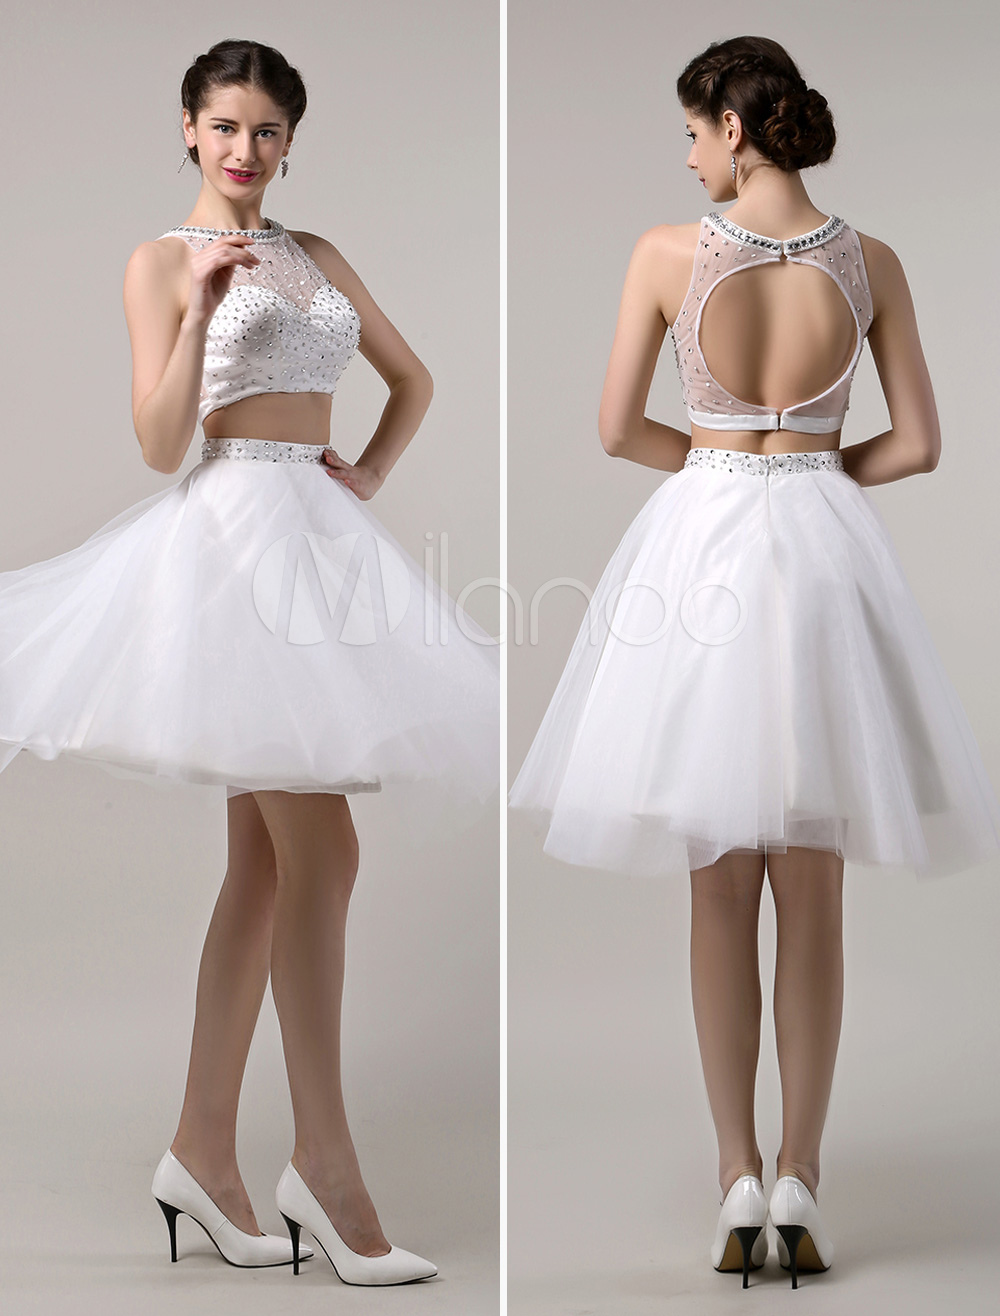 5f161fb0ae5f Two Piece Prom Dresses 2019 Short White Prom Dress Crop Top Cutout Back  With Tulle Tutu Skirt - Milanoo.com